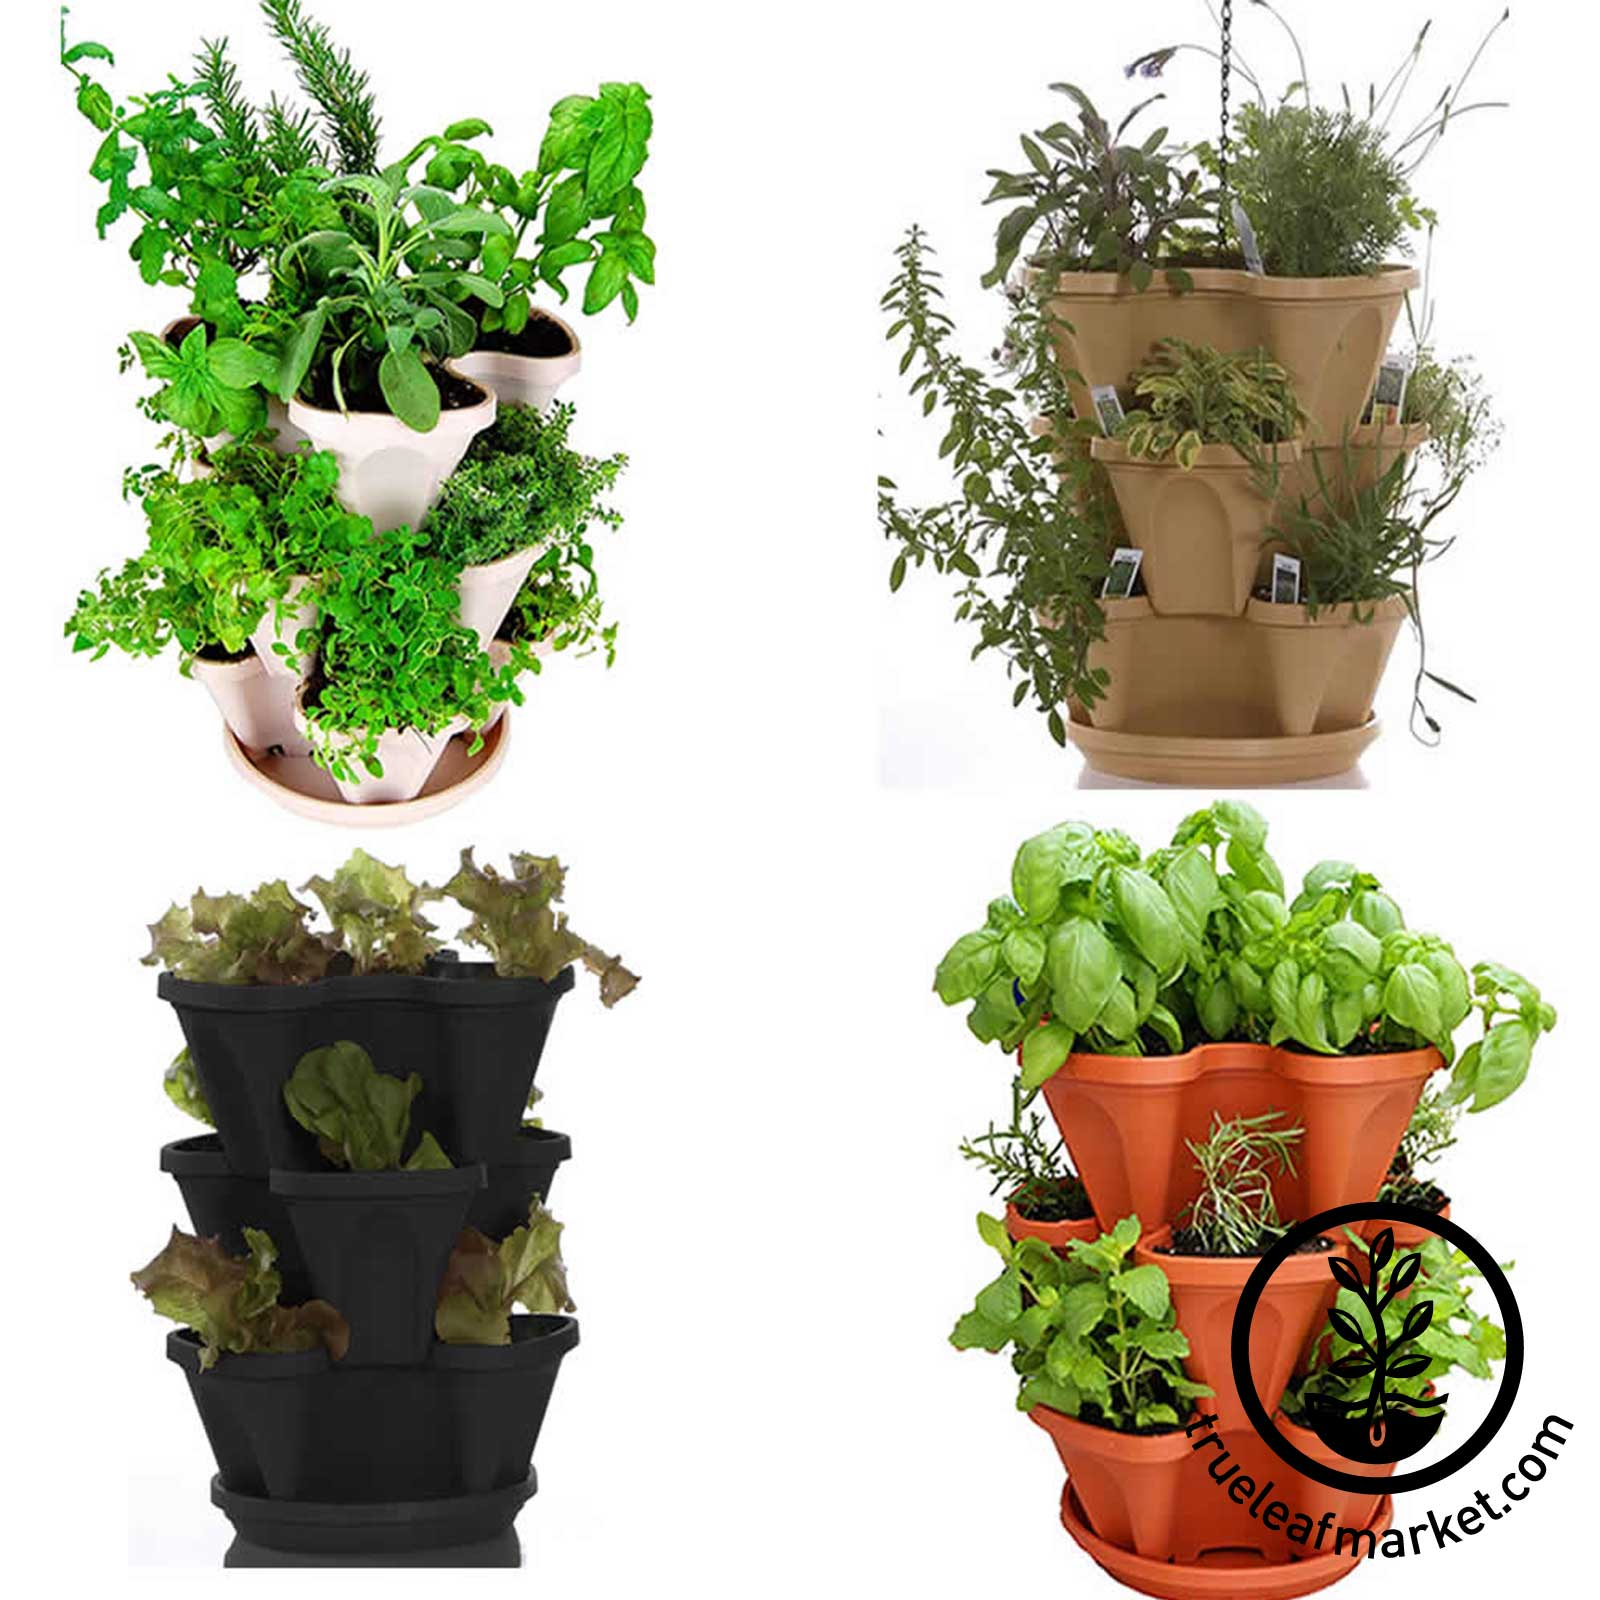 Garden Stacker + The Indoor Culinary Herb Garden